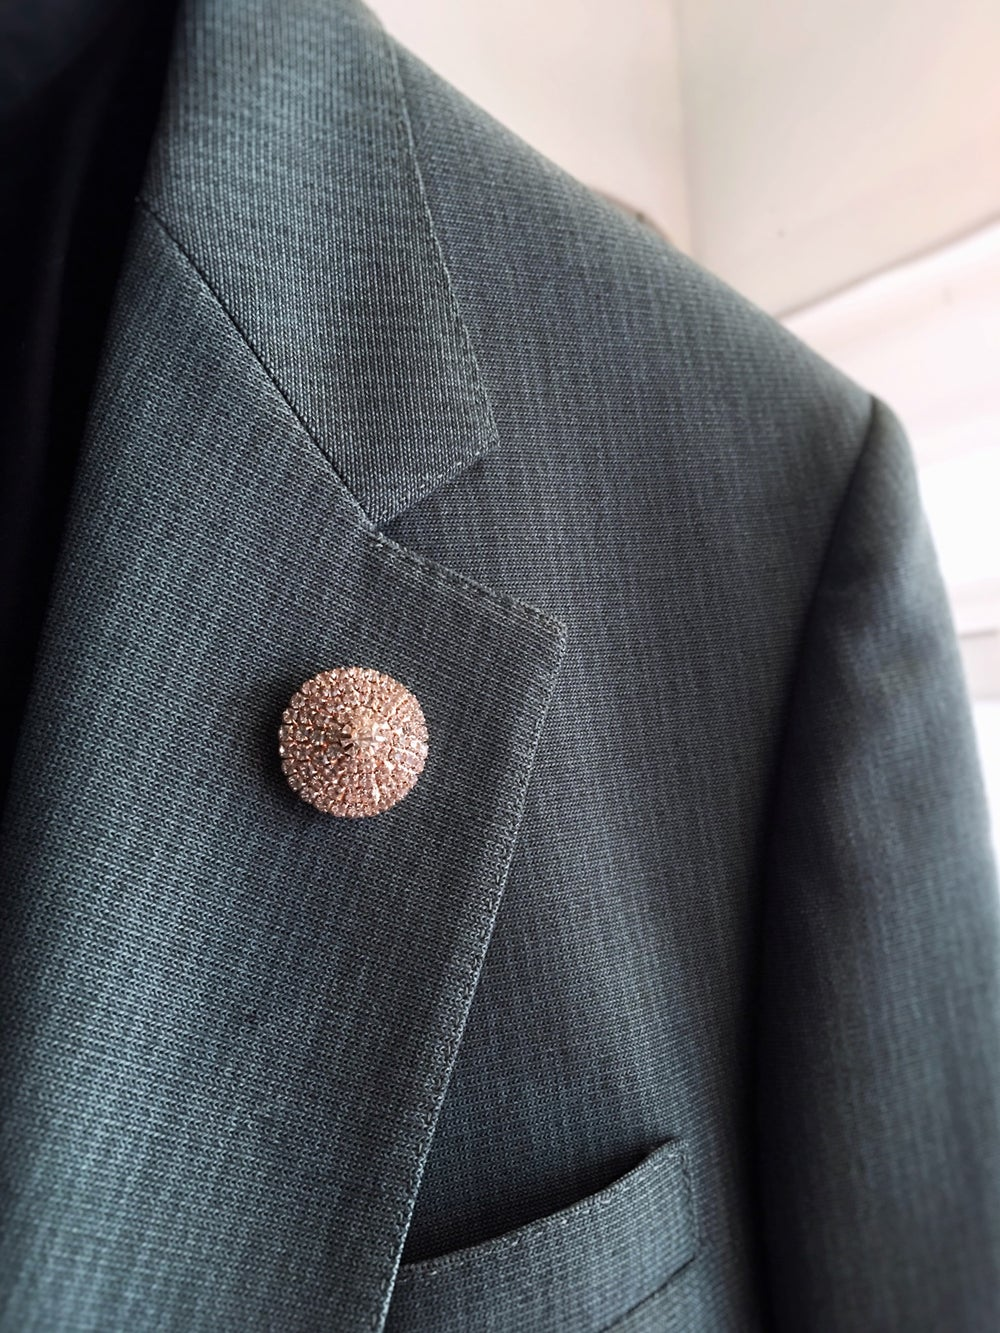 ROSE GOLD JEWELED | LUXURY LAPEL PIN